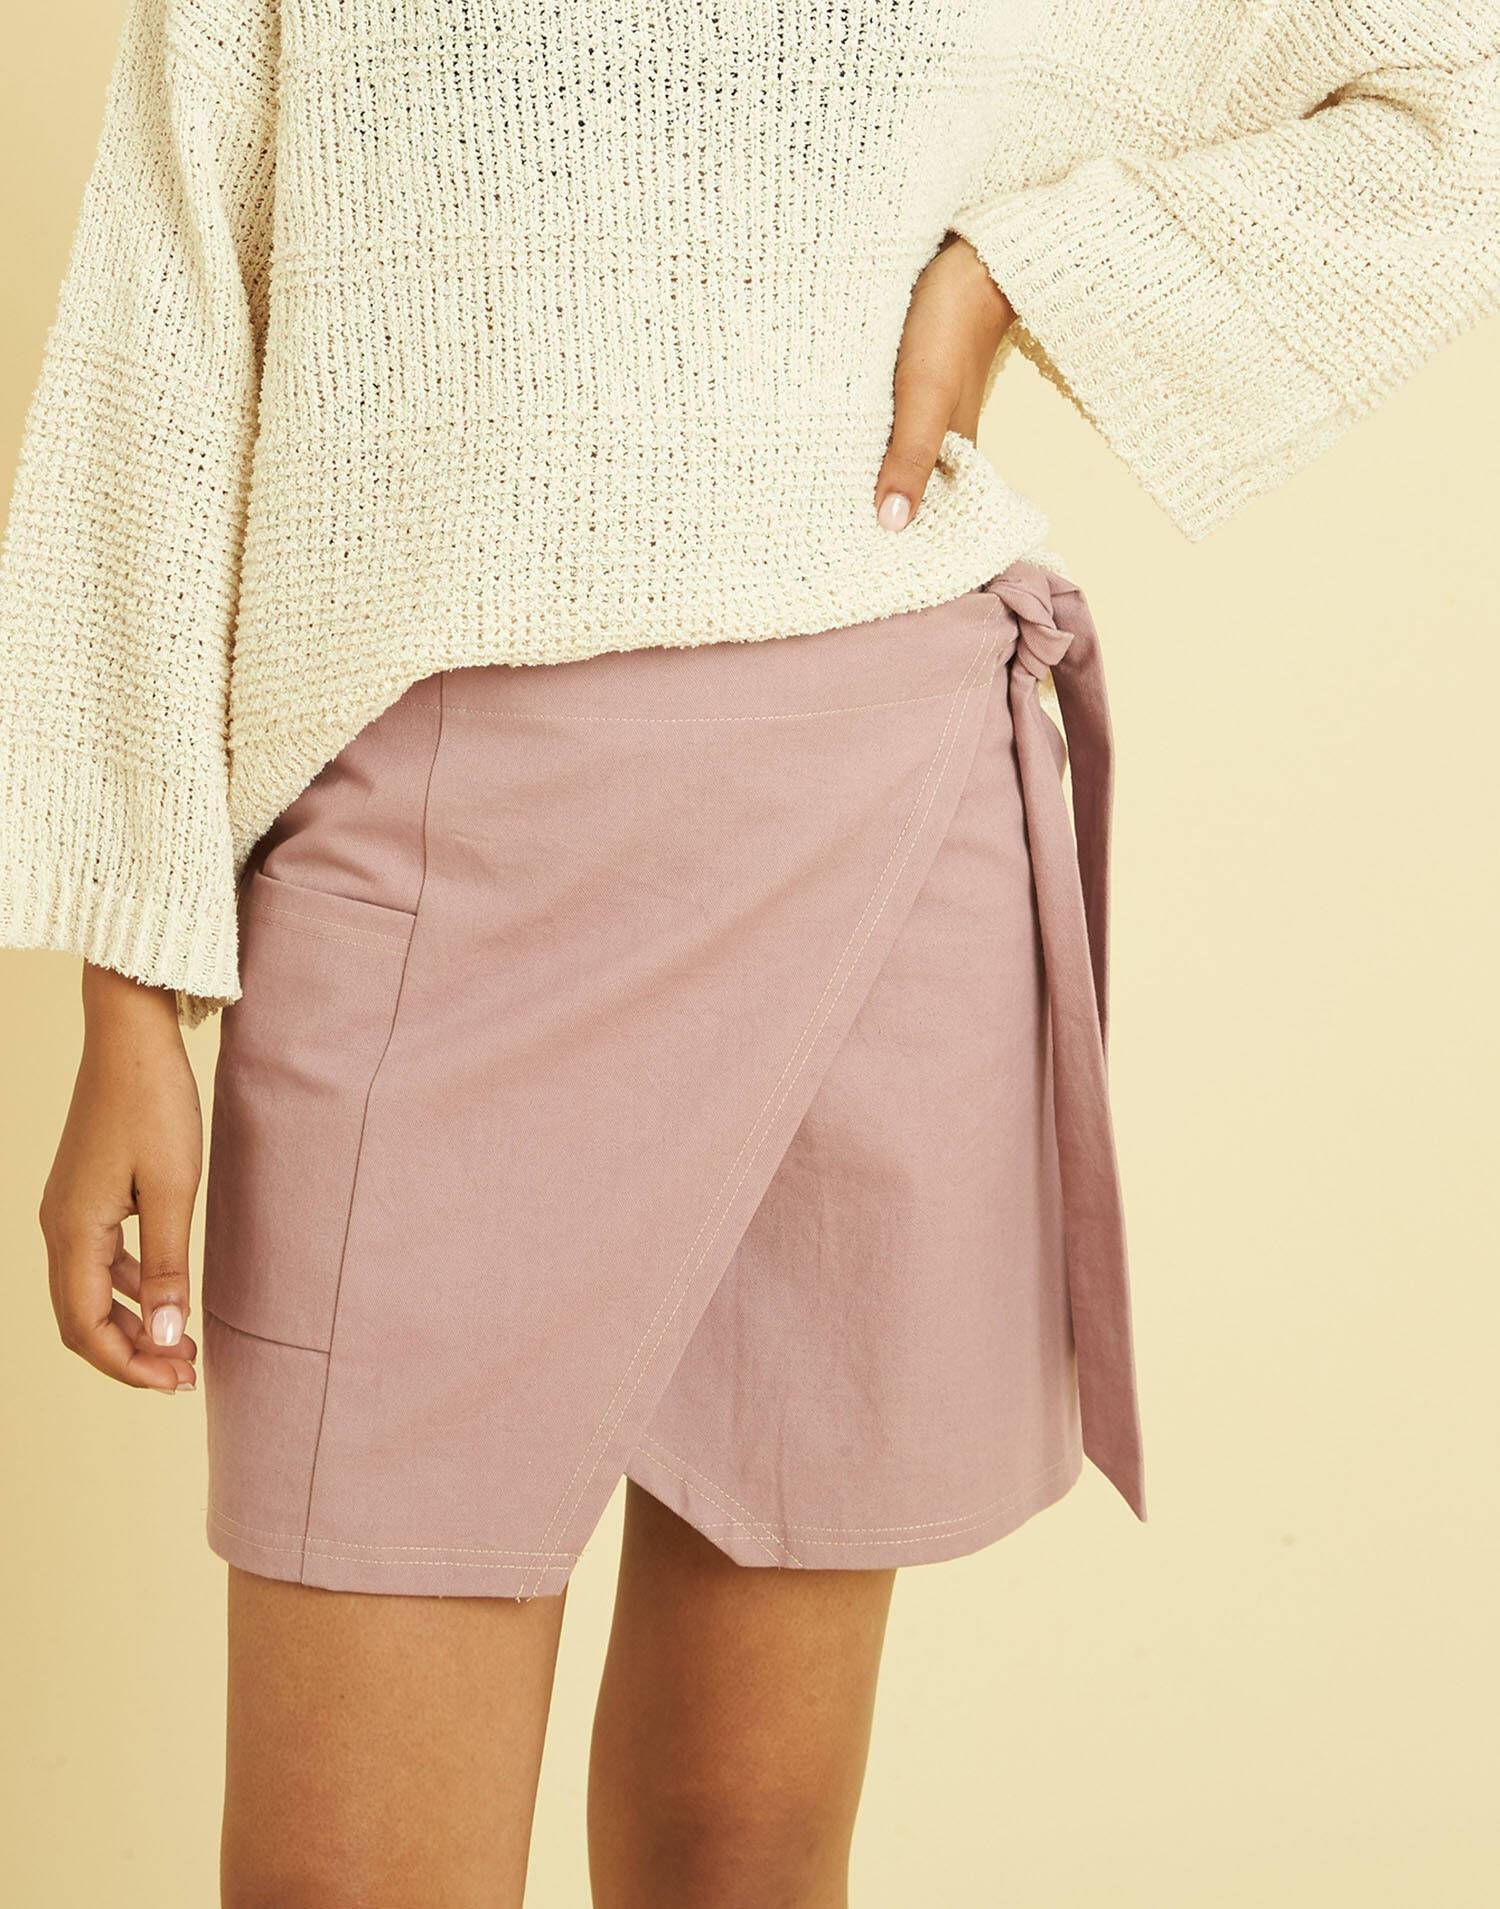 WRAP SKIRT WITH POCKET